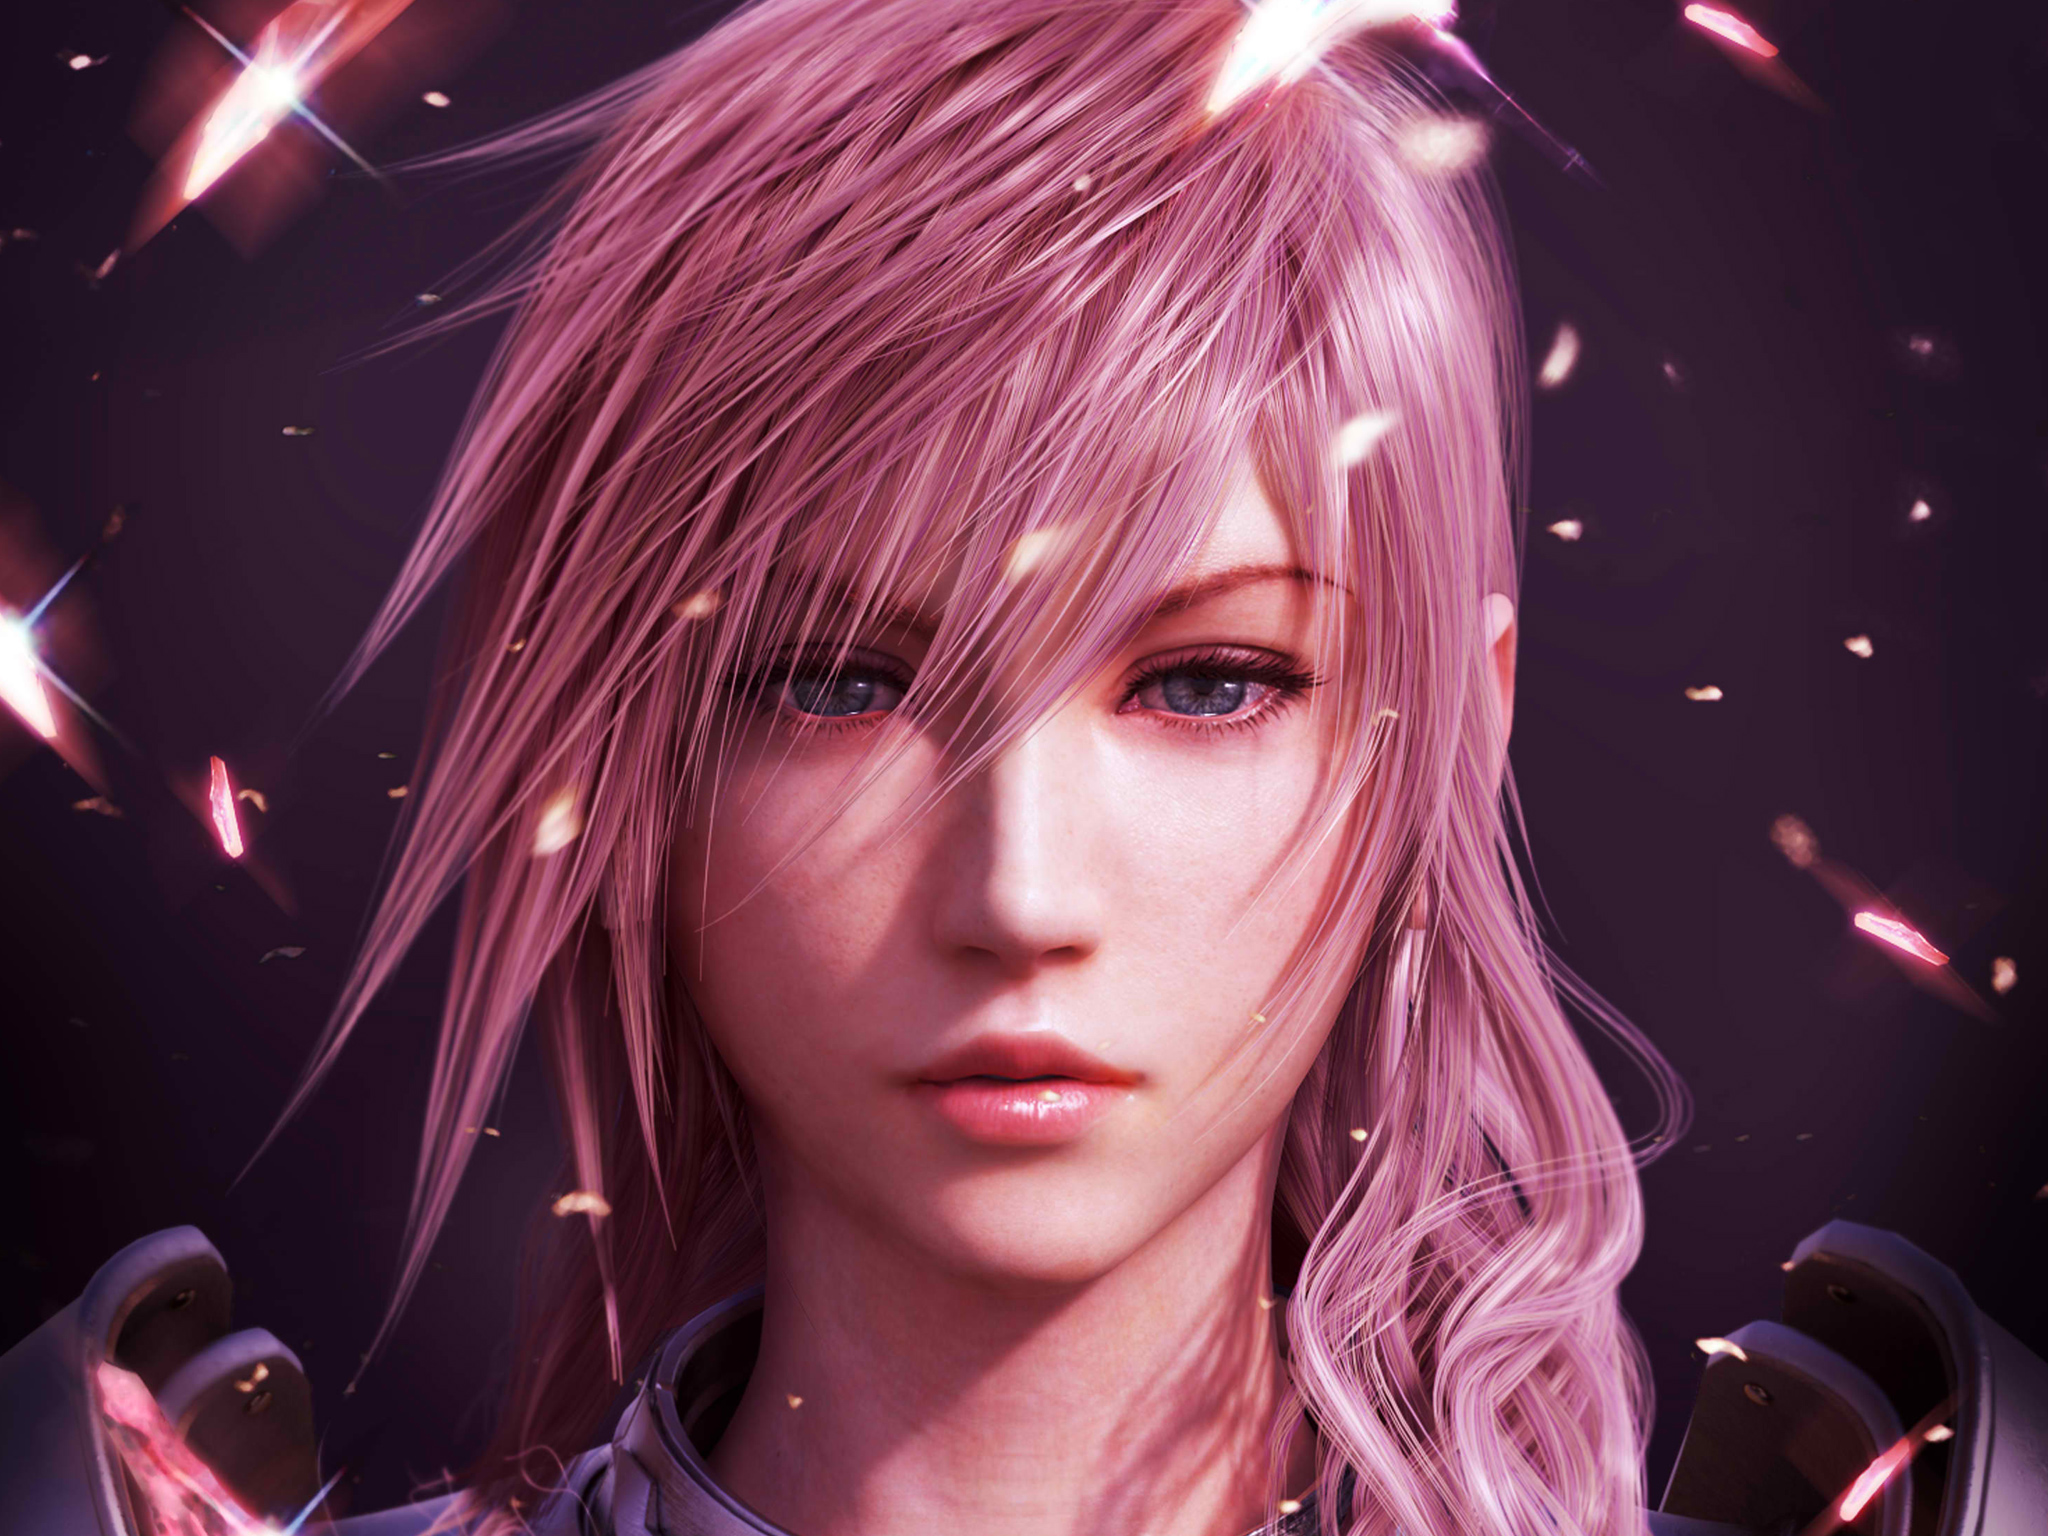 Lightning Final Fantasy 1885.25 Kb